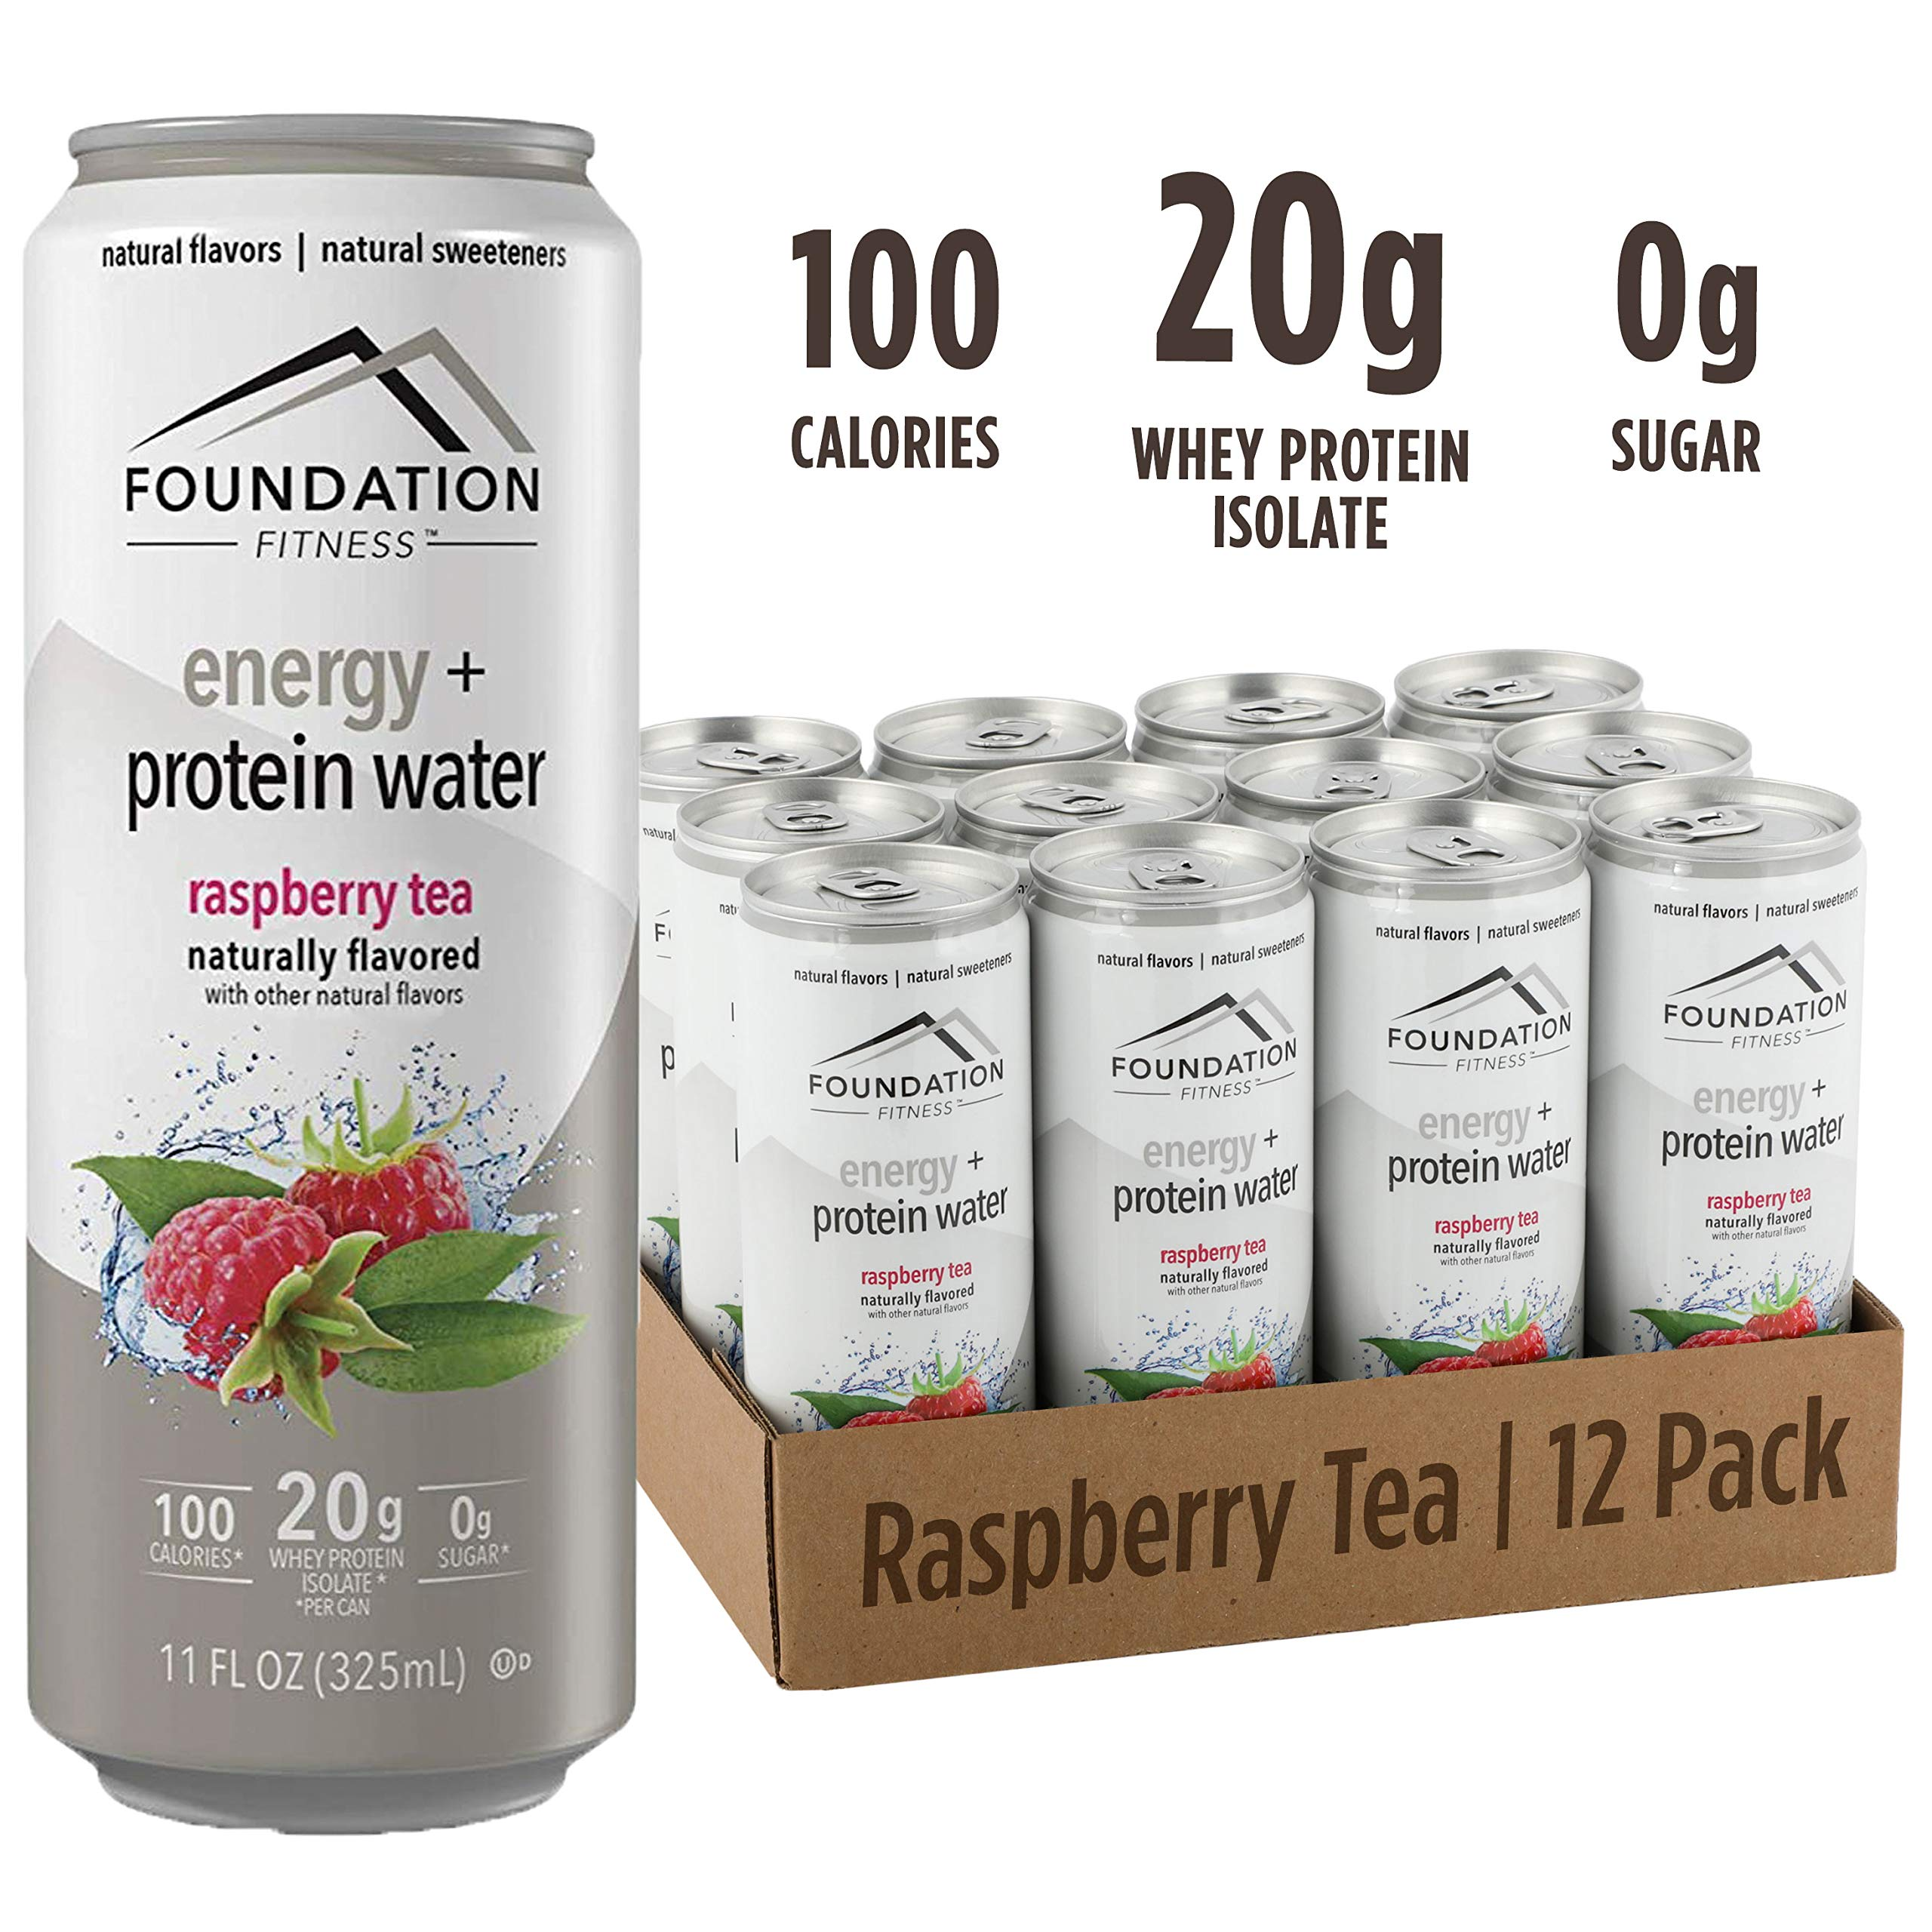 Foundation Fitness Energy & Protein Water, Raspberry Tea, Ready to Drink, 20g Protein, Natural Flavors & Sweetener, 0g Sugar, 11 fl oz, (Pack of 12)